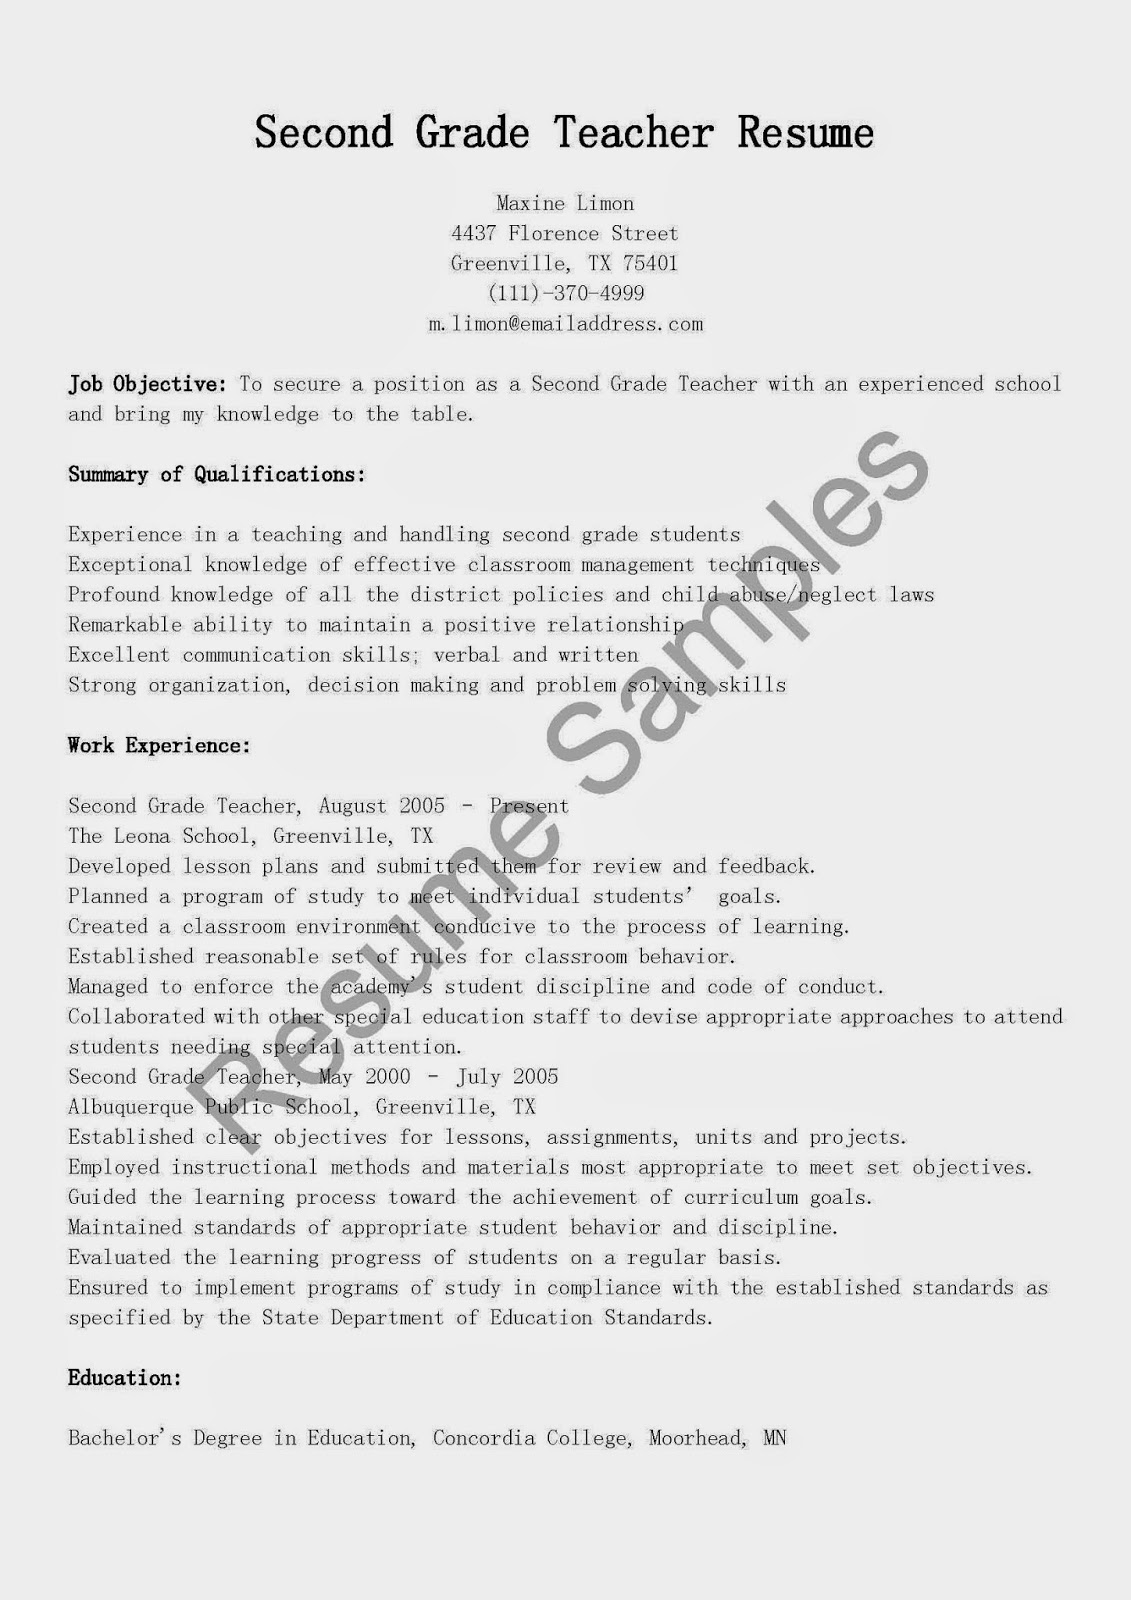 resume samples  second grade teacher resume sample